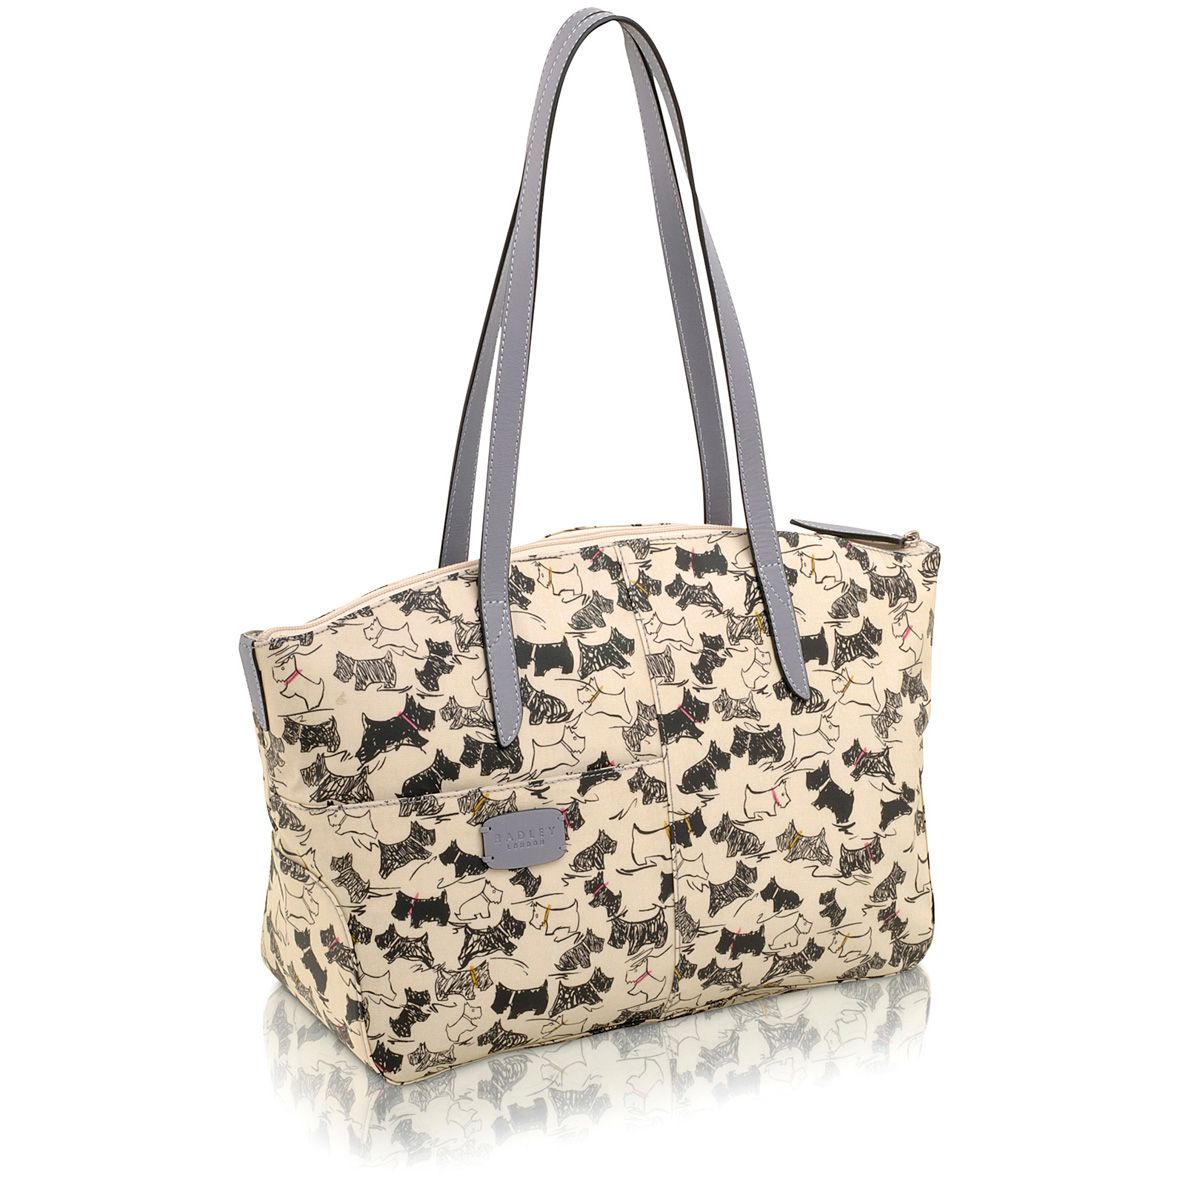 Cream doodle dog medium tote bag